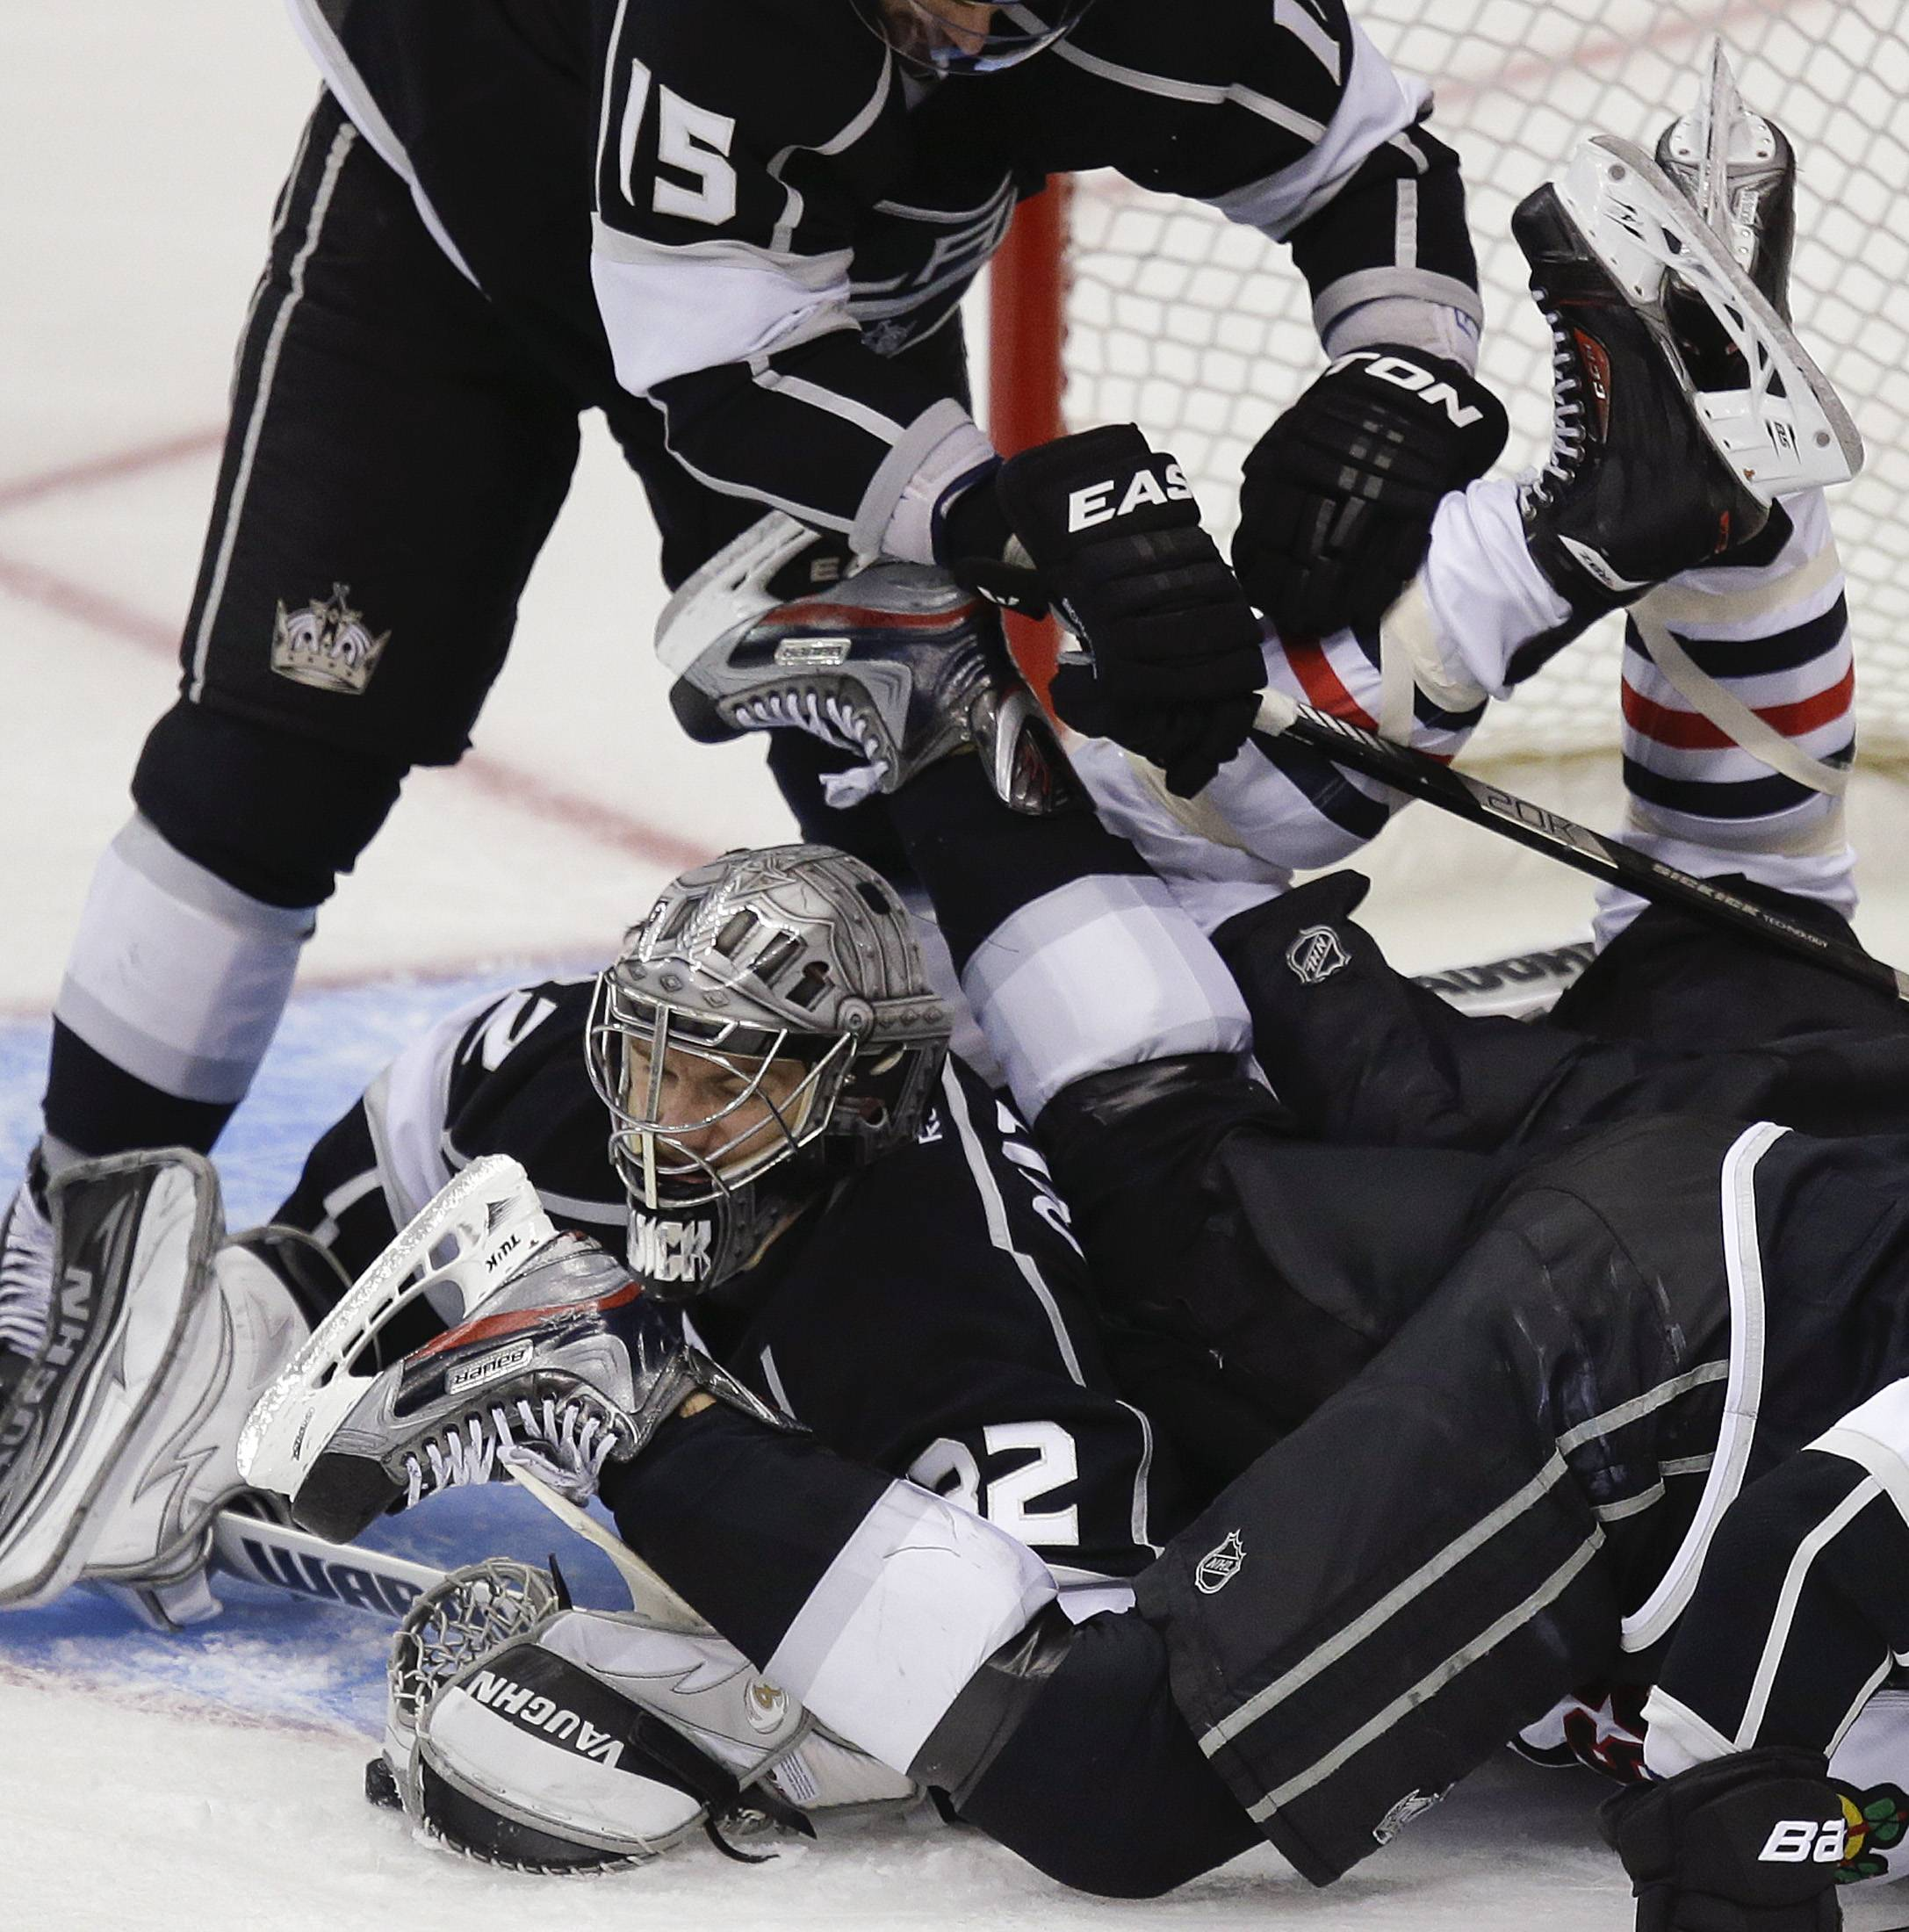 Los Angeles Kings goalie Jonathan Quick (32) gets tangled up in the crease during the second period against the Chicago Blackhawks during Game 3 of the NHL hockey Stanley Cup playoffs Western Conference finals, Tuesday, June 4, 2013, in Los Angeles.